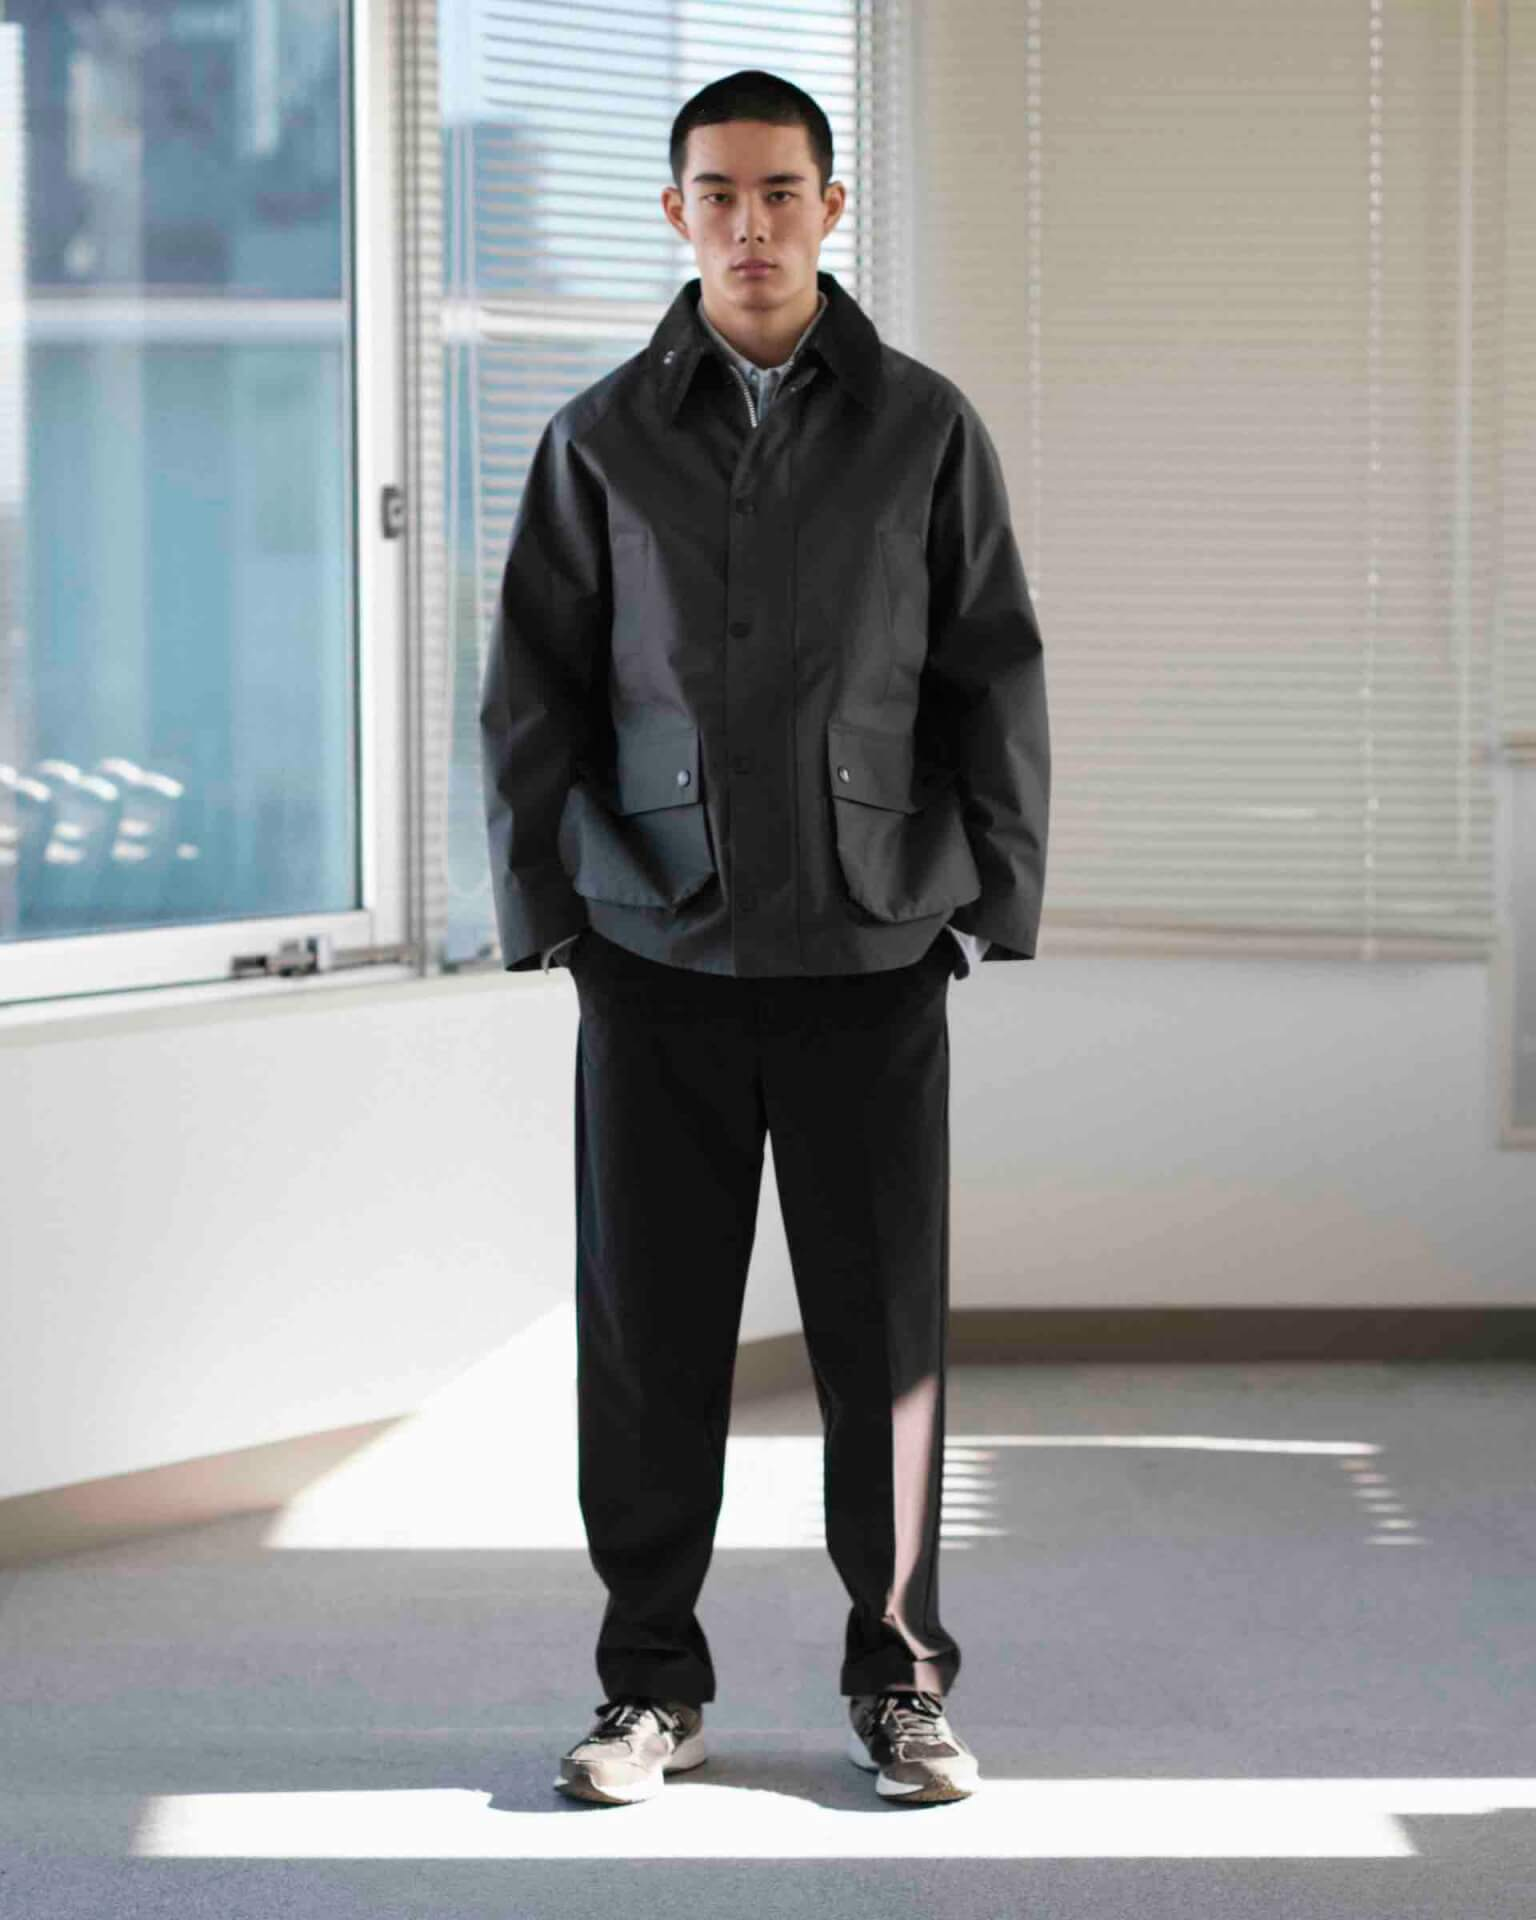 BarbourとworkahoLCのコラボアイテムが発売決定!OVER SIZE BEDALEモデルのジャケットが登場 life210913_urbs_barbour_6